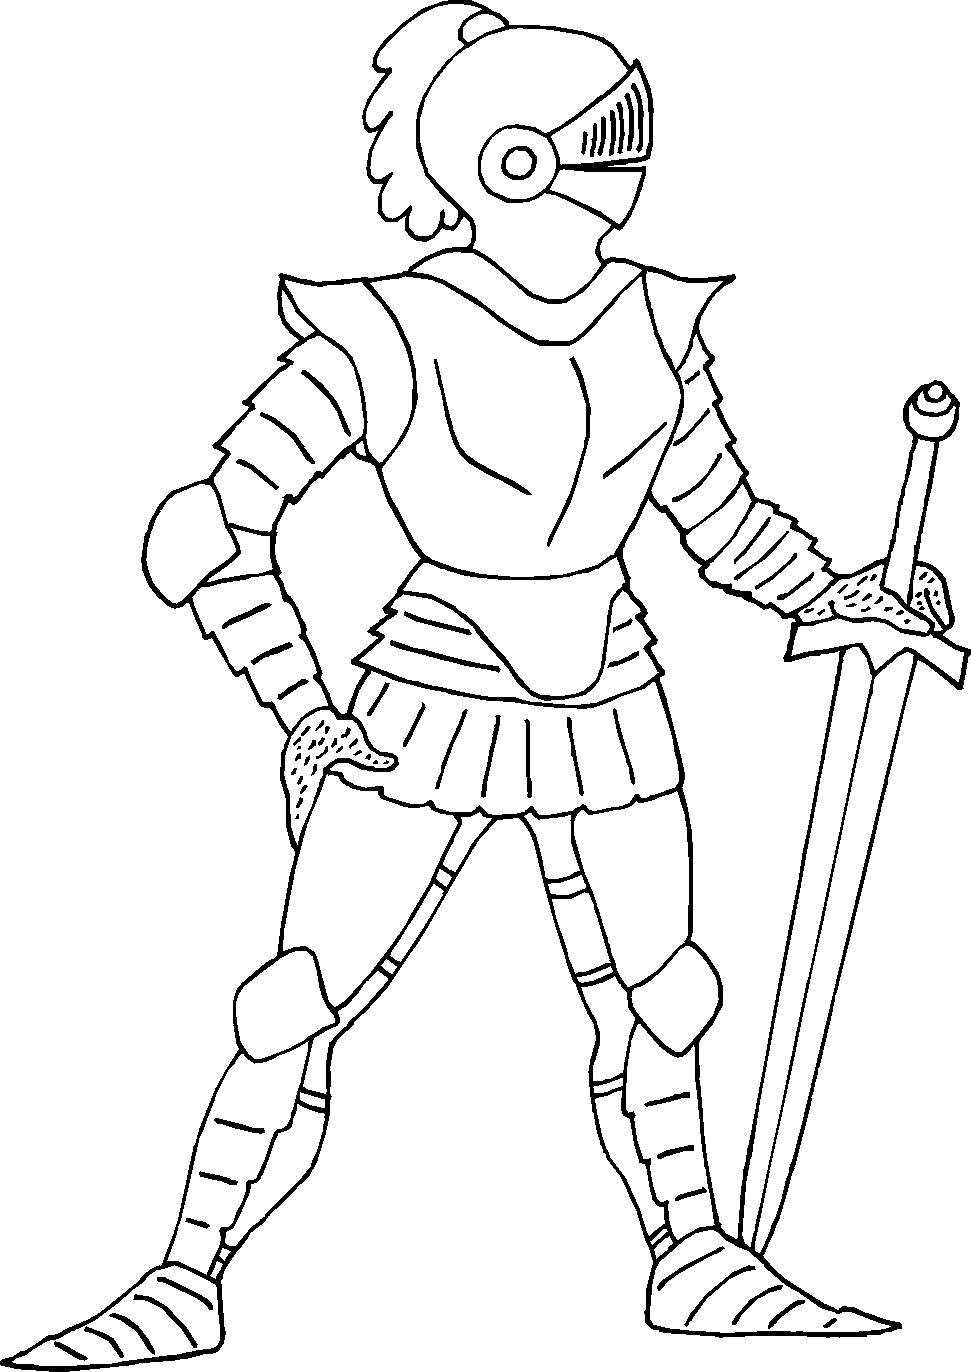 knight coloring pages - q=knight